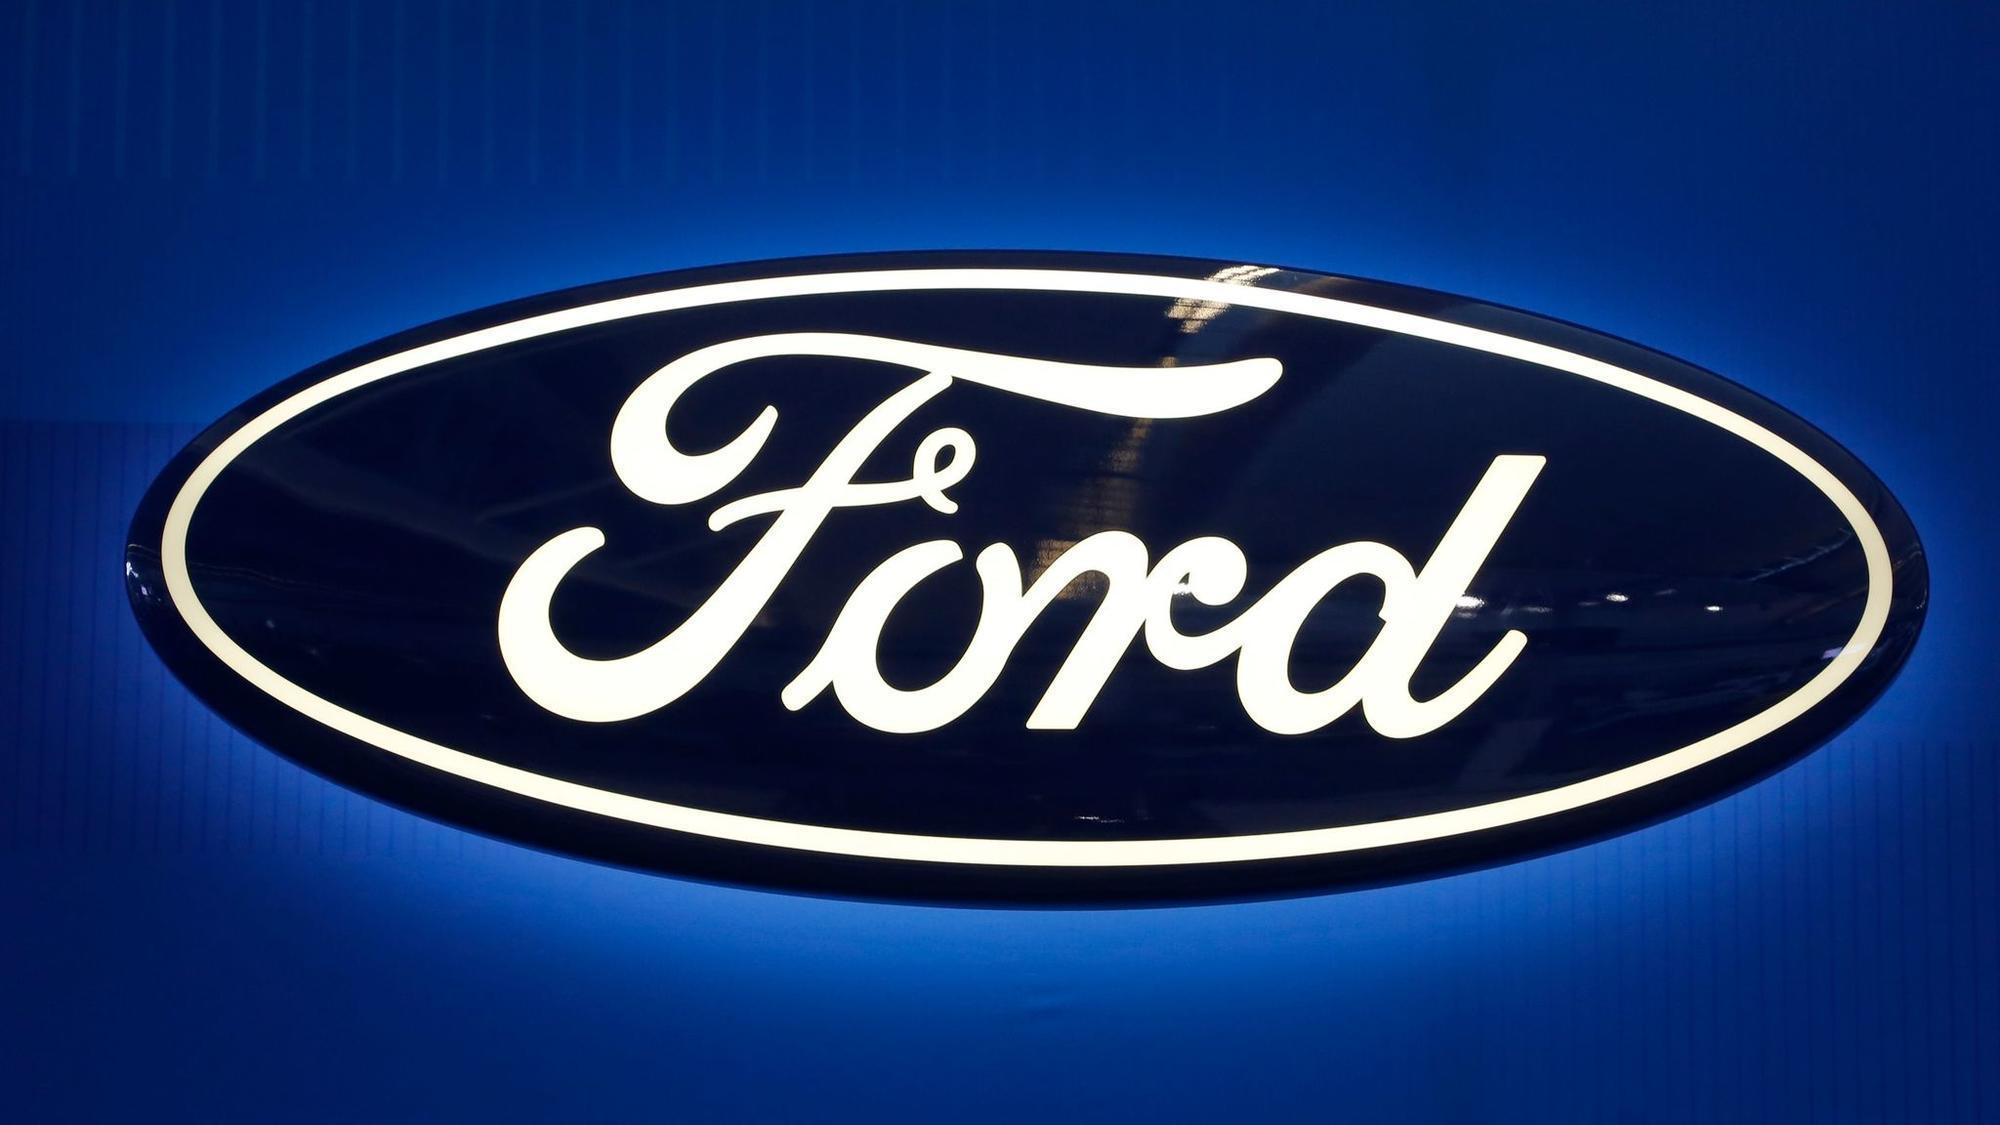 Fordcontrolled Company Acquires Laserdetection Firm Sun Sentinel - Ford